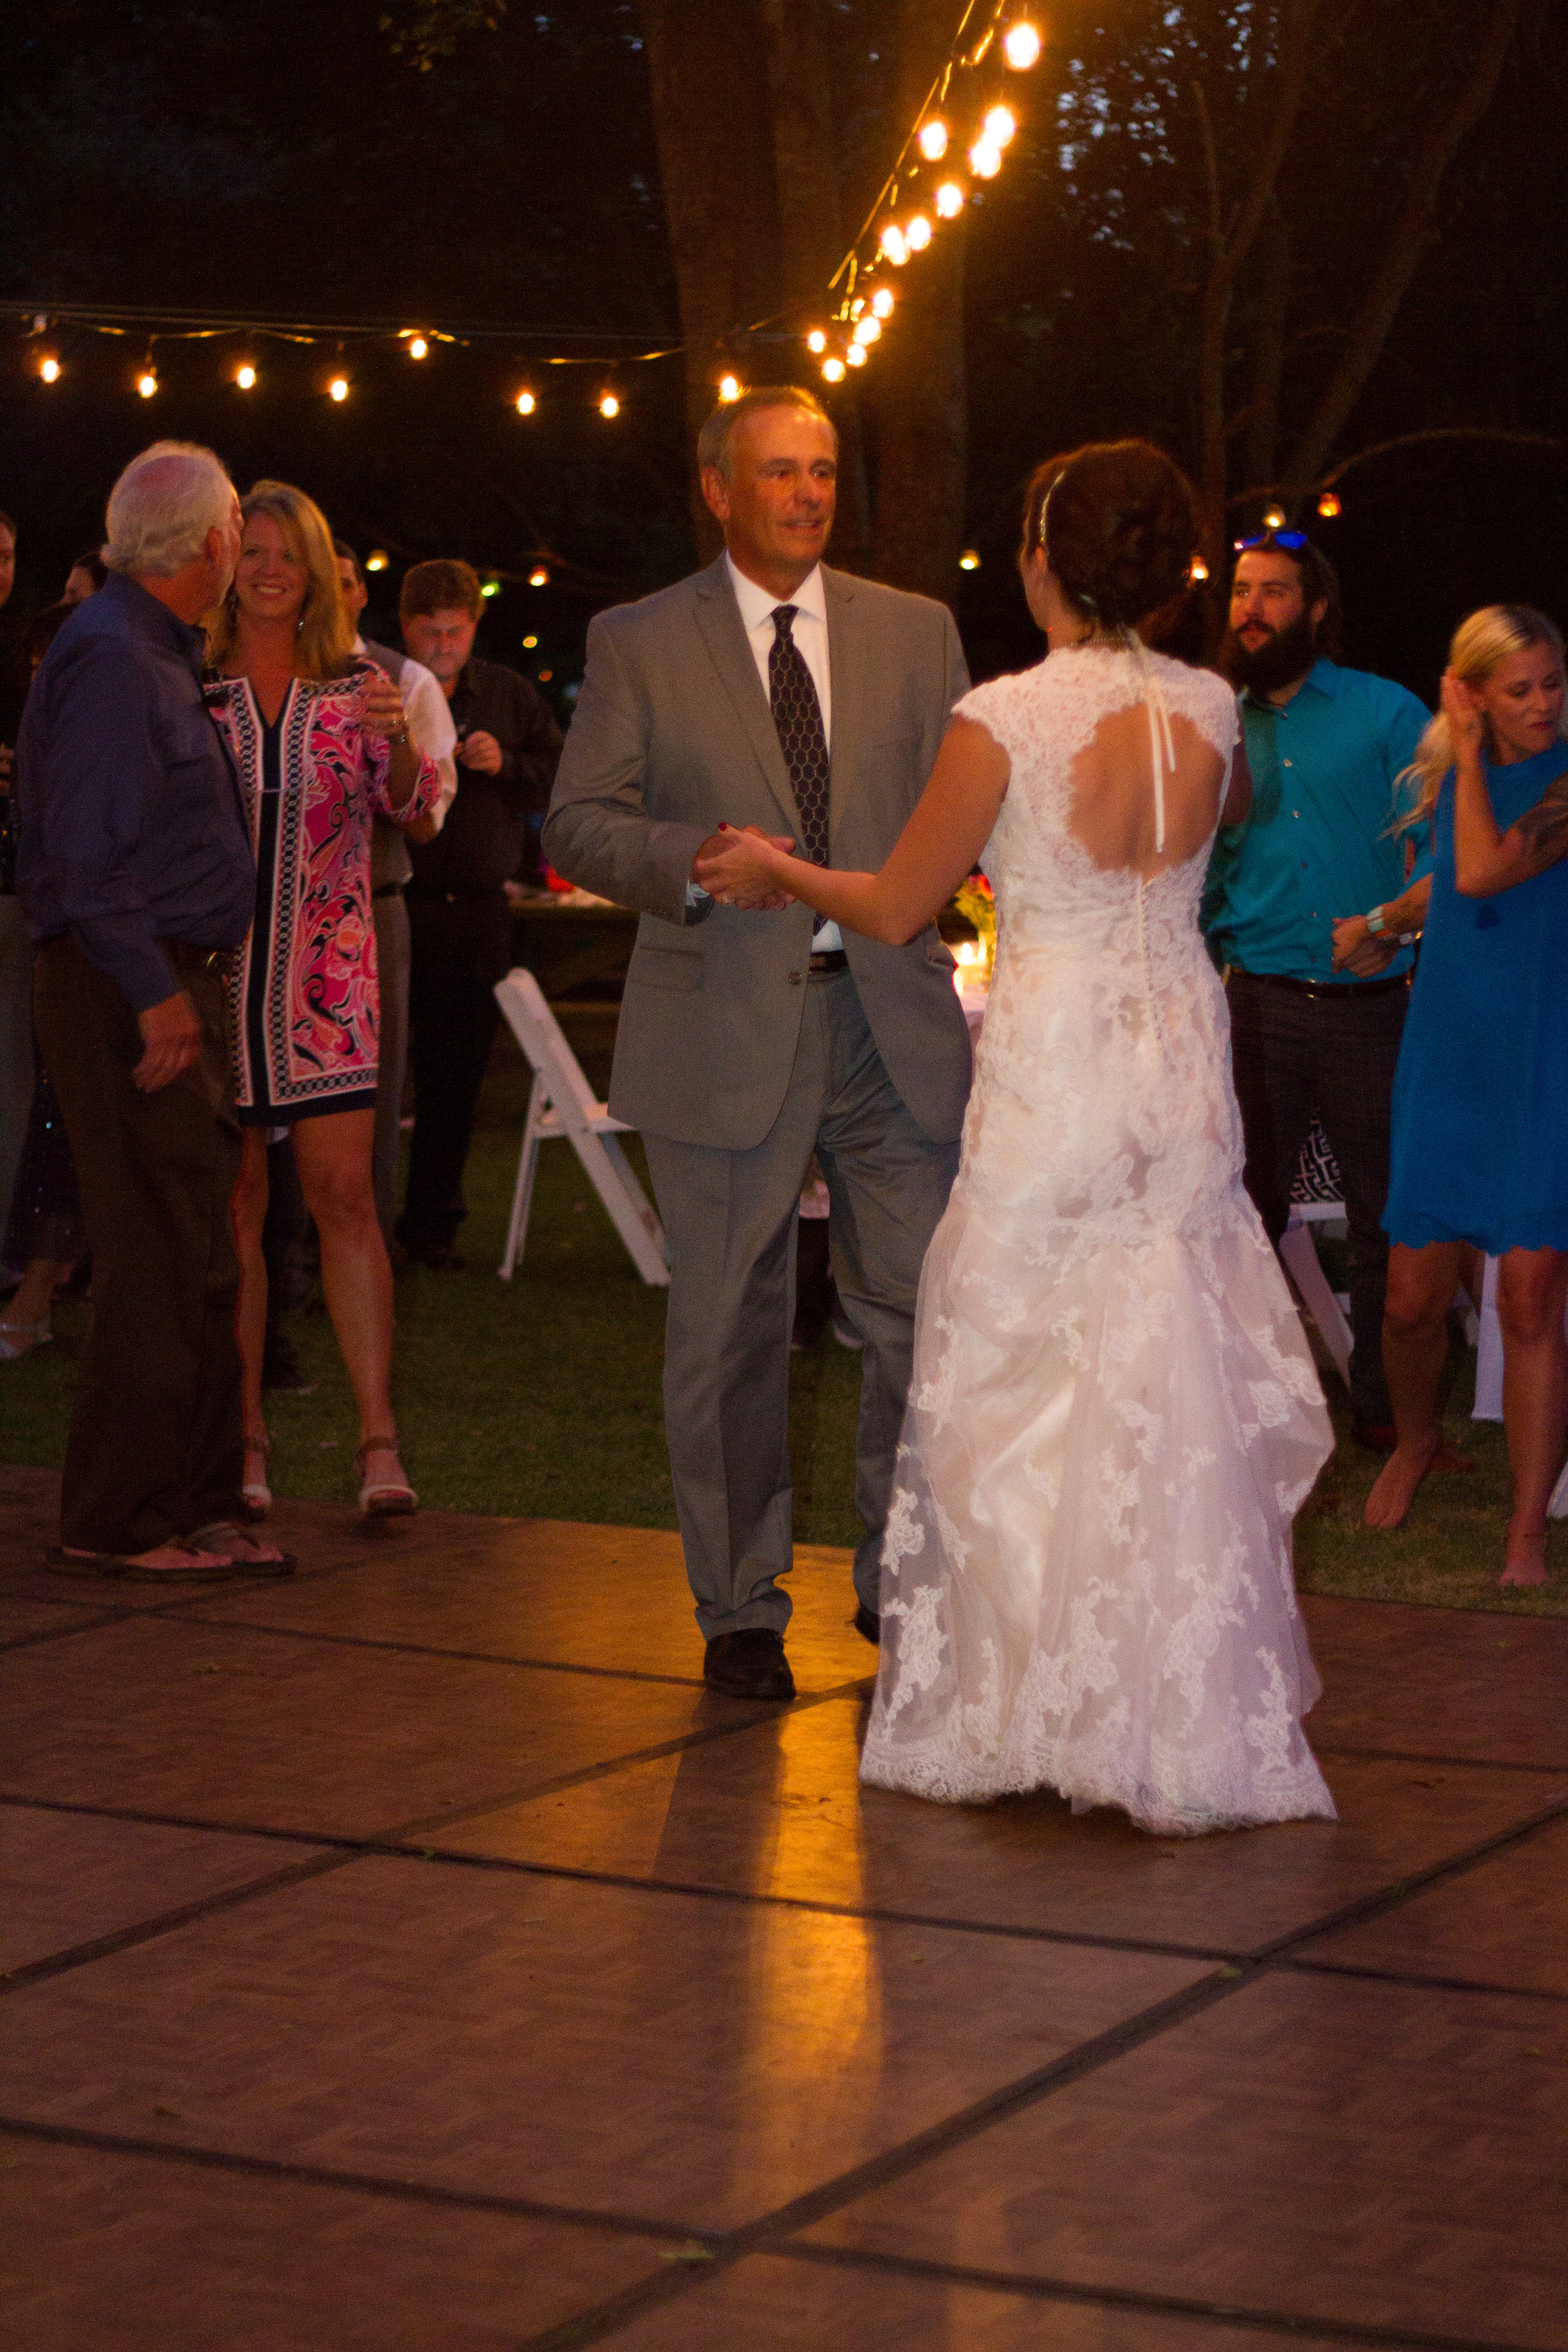 Jacqueline and Shawn Wedding (463 of 597).jpg